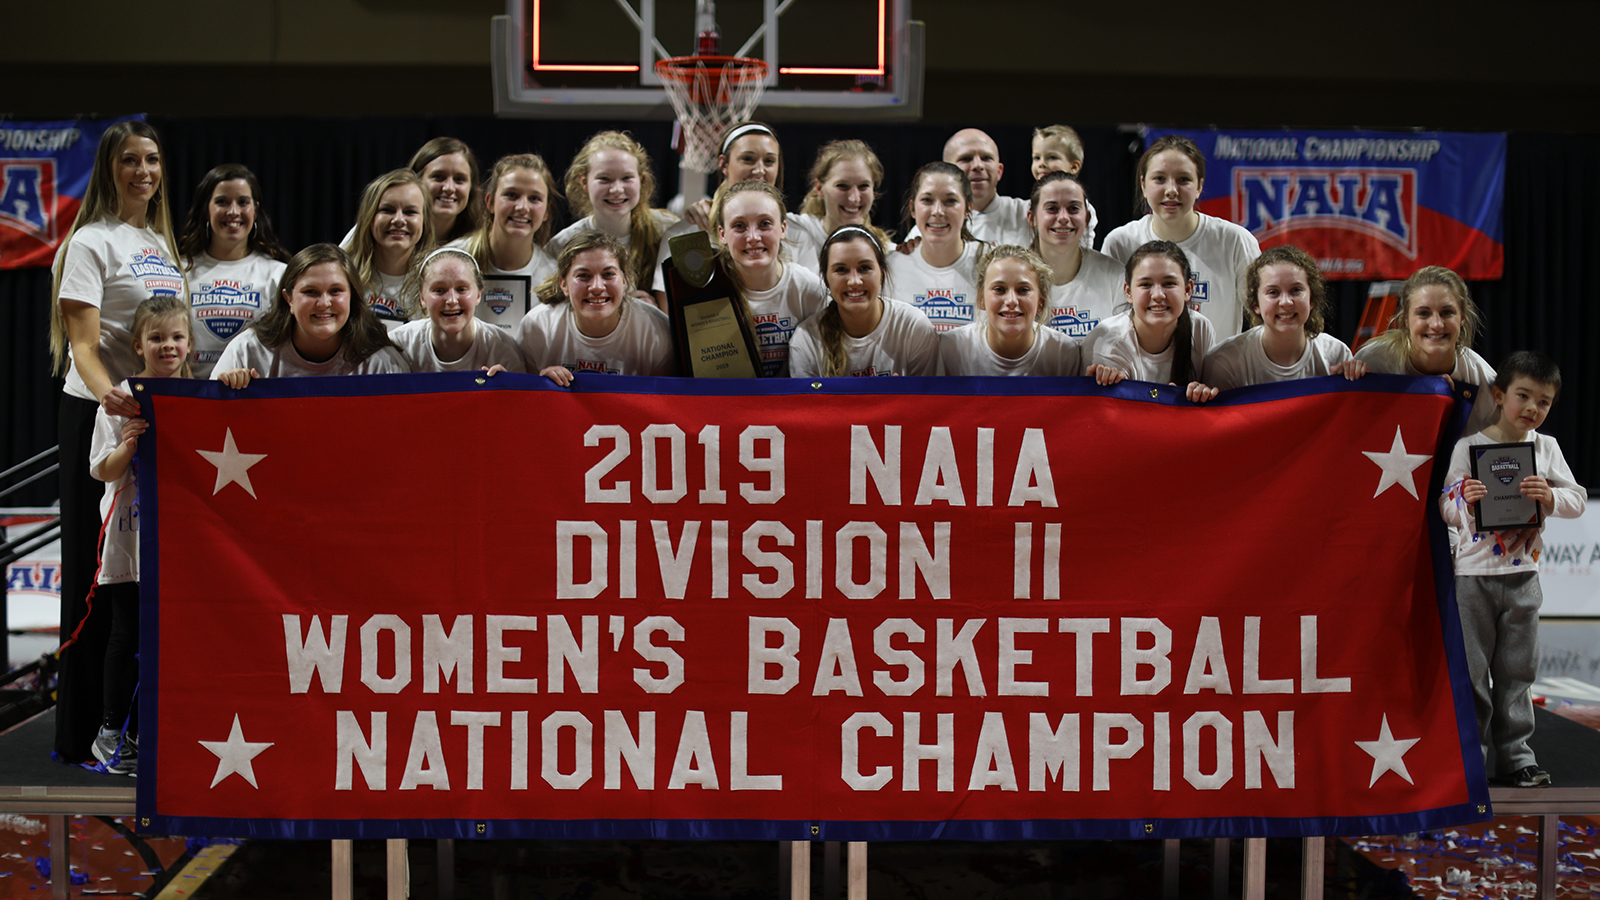 2019 NAIA Division II Women's Basketball National Championship